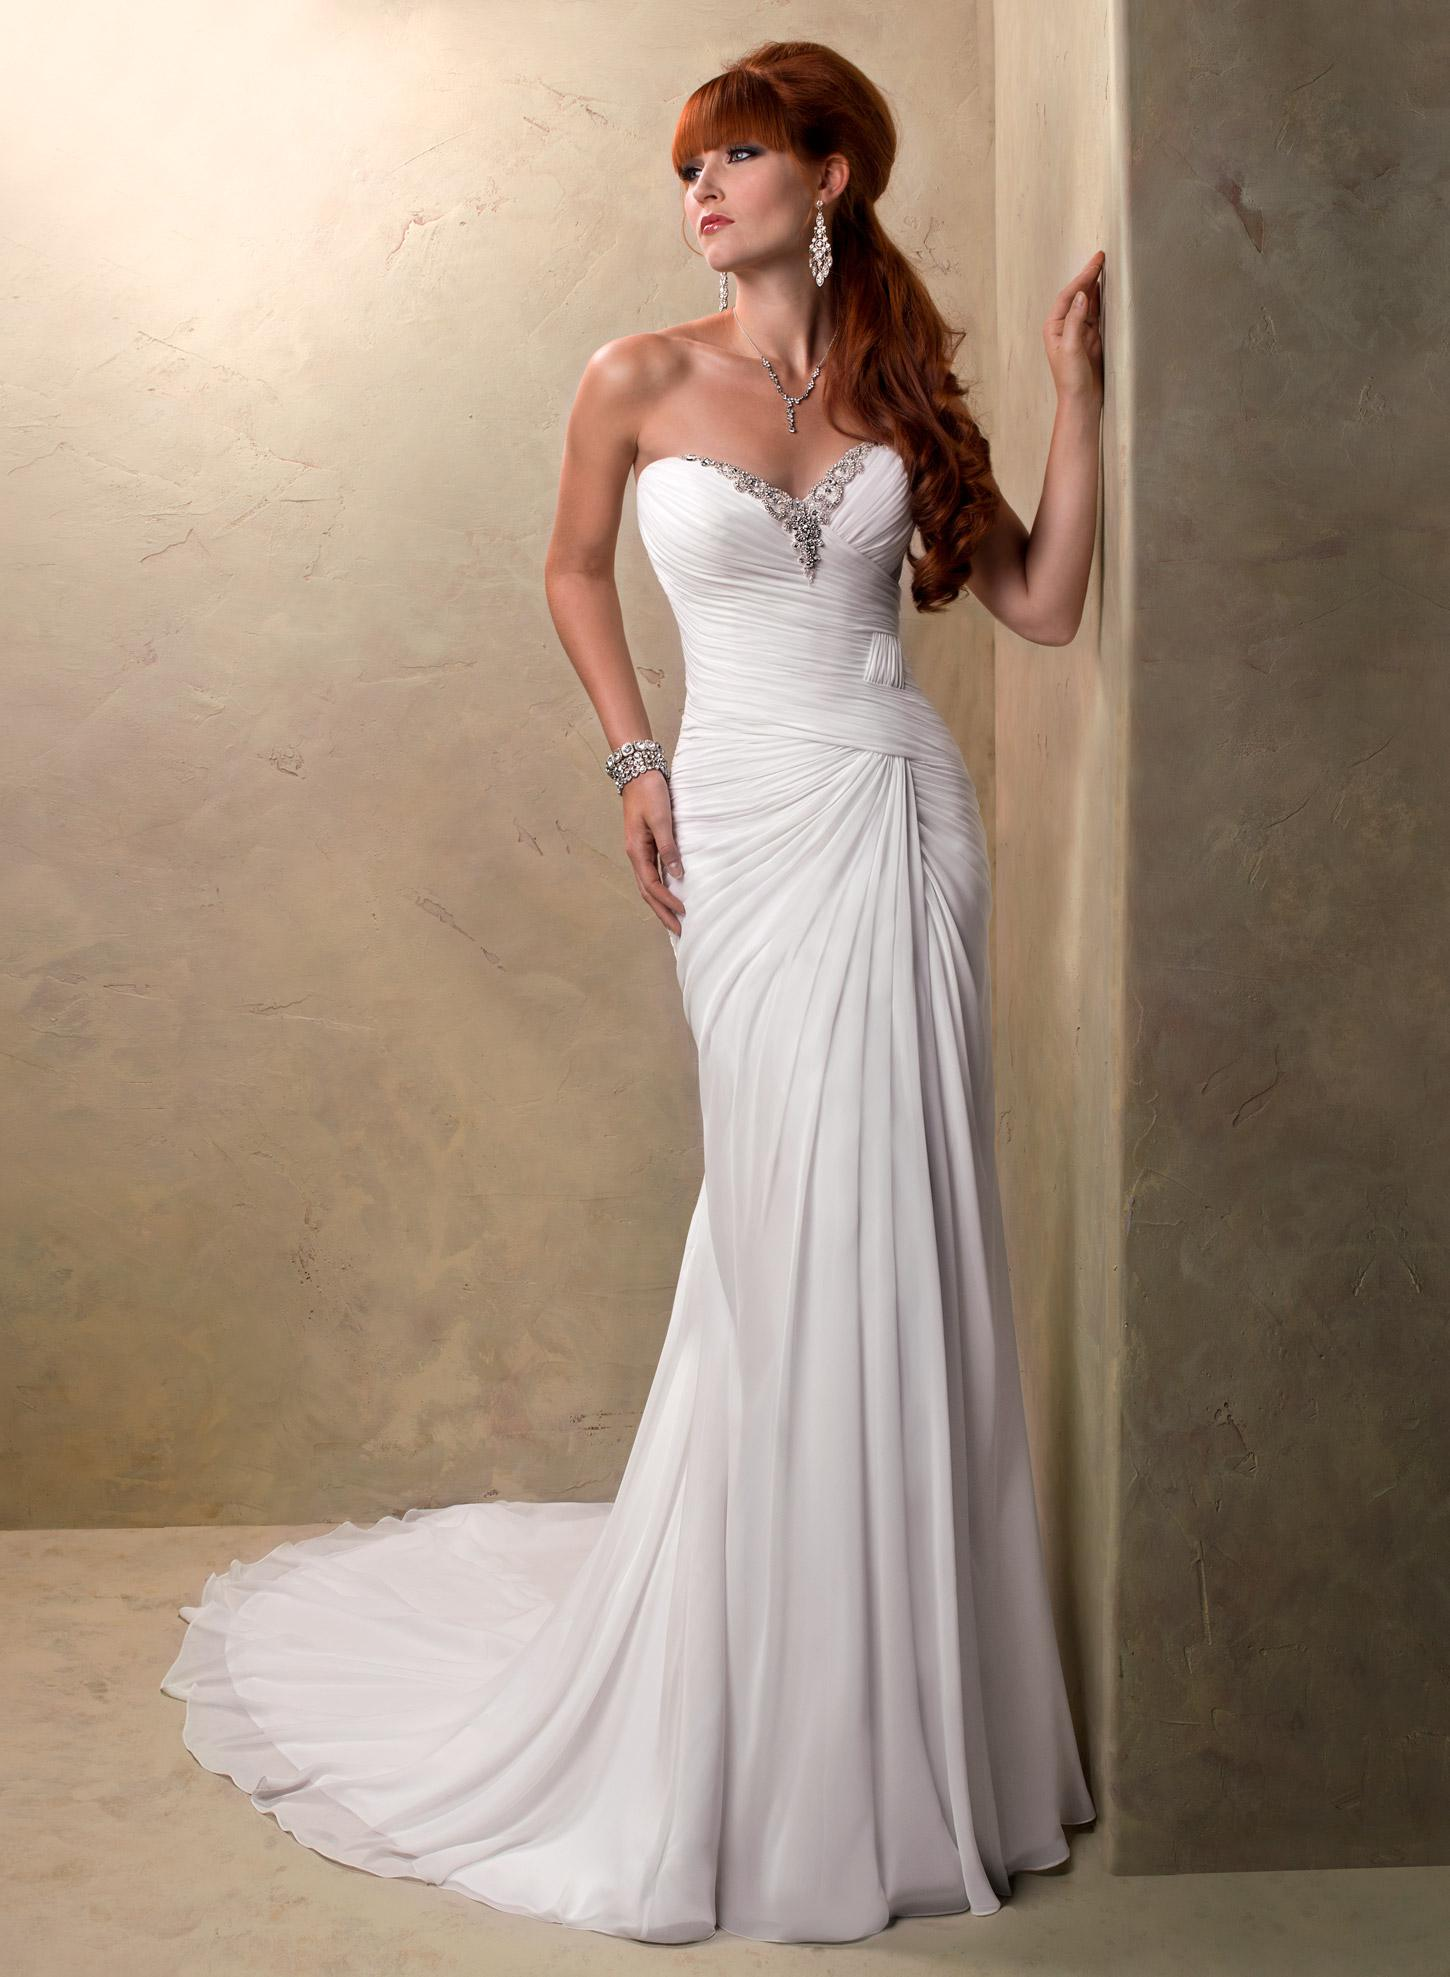 Maggie Sottero - Jacee, White:36/38